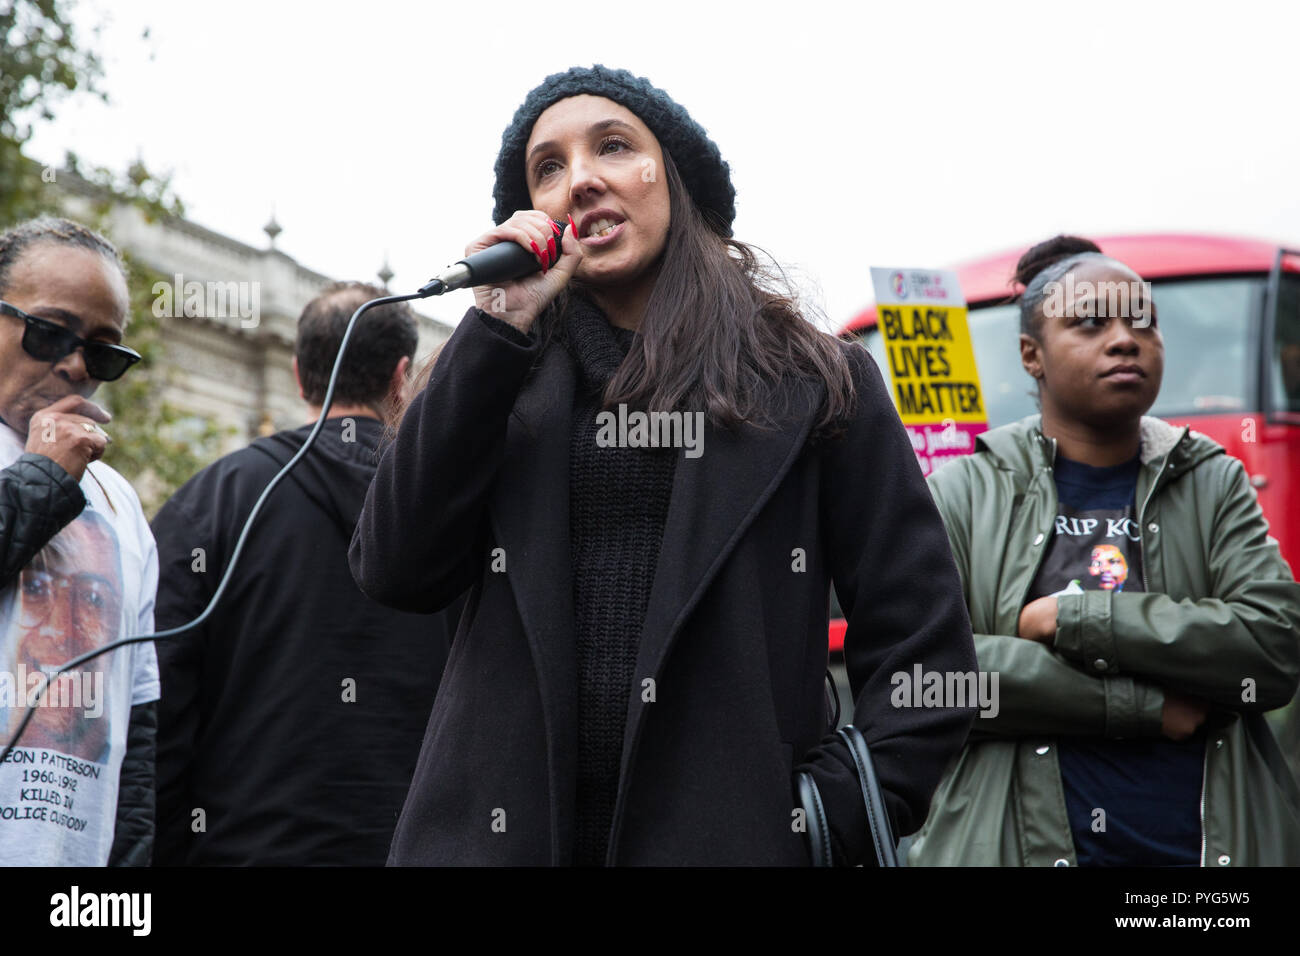 London, UK. 27th October, 2018. Lisa Cole, sister of Marc Cole, addresses campaigners from the United Families and Friends Campaign (UFFC) taking part in the 20th annual procession to Downing Street in remembrance of family members and friends who died in police custody, prison, immigration detention or secure psychiatric hospitals. Marc Cole, 30, died after being tasered by police called to reports of a man 'slashing himself' with a knife in Falmouth in May 2017. Credit: Mark Kerrison/Alamy Live News - Stock Image